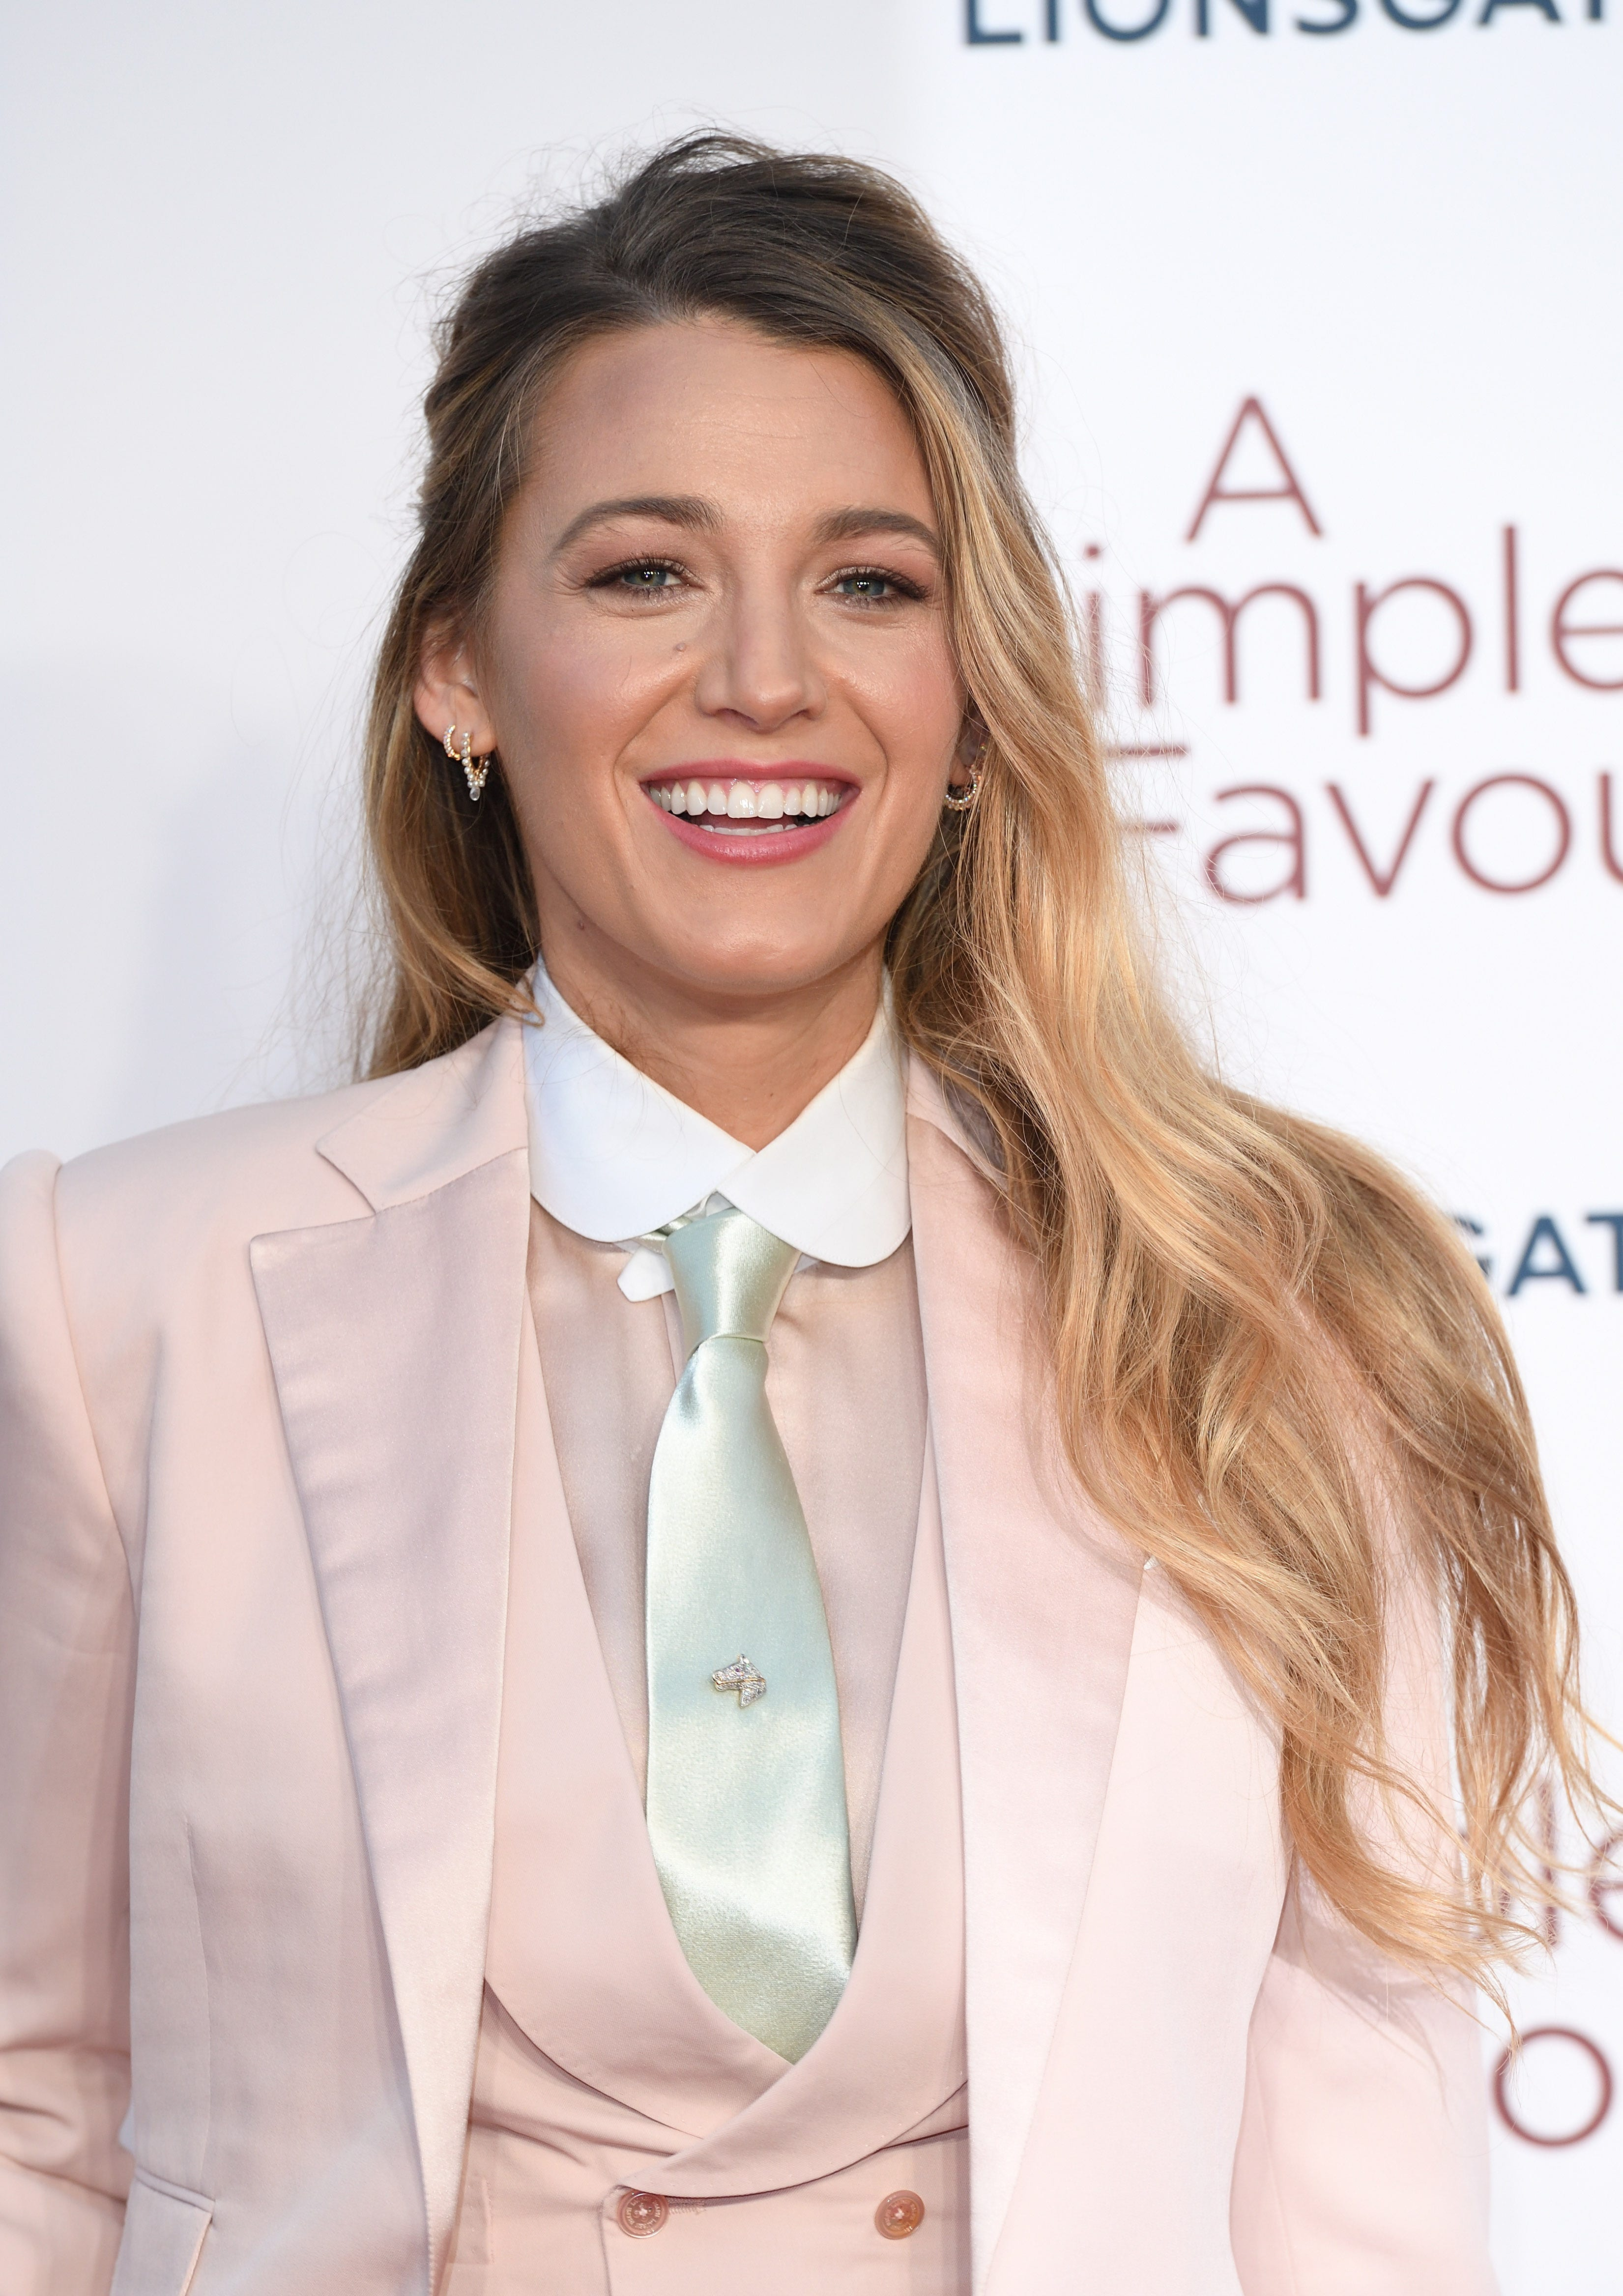 Blake Lively shuts down 'double standard' critics in Robert Redford-inspired pink suit